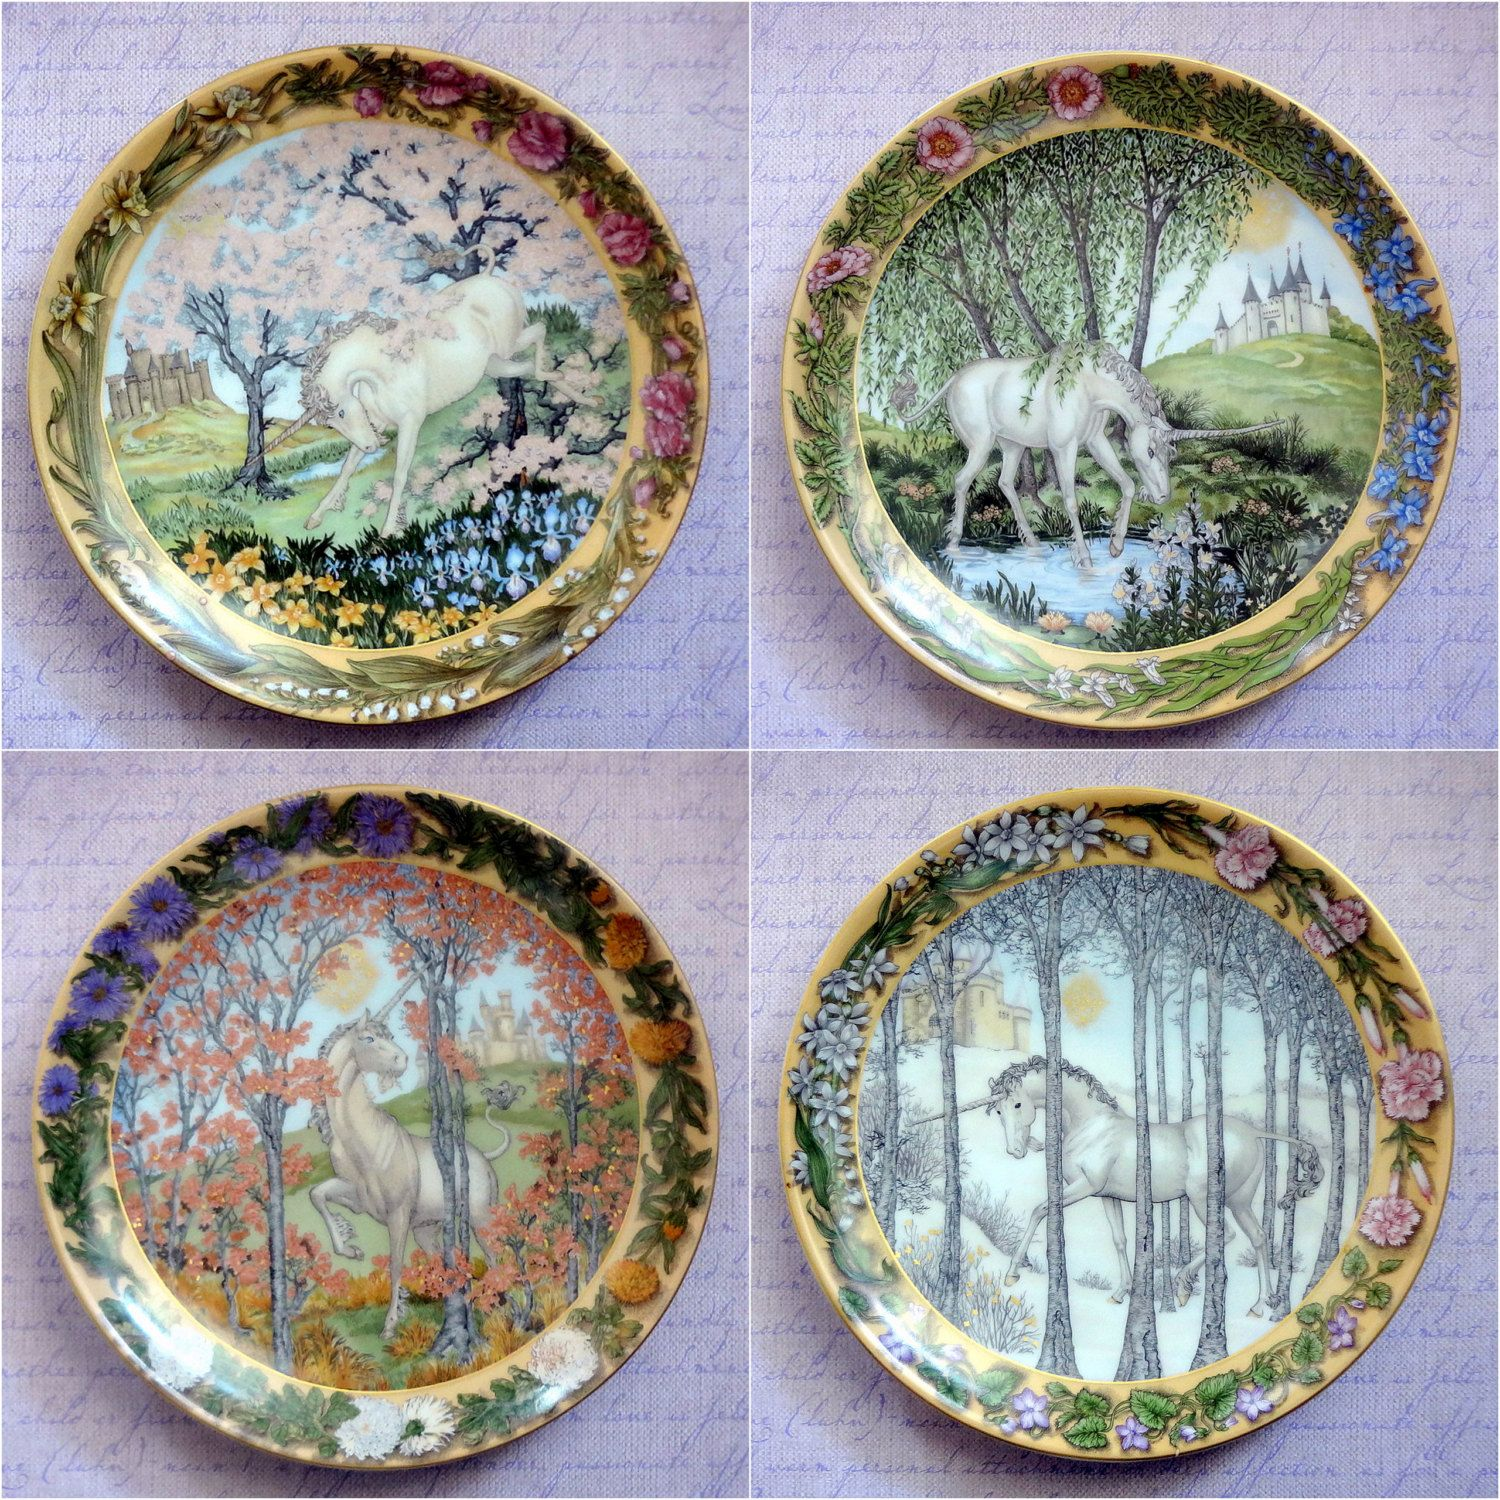 Vintage Hutschenreuther Plates - \ Enchanted Seasons of a Unicorn\  series from the Hutschenreuther company  sc 1 st  Pinterest & Vintage Hutschenreuther Plates - \